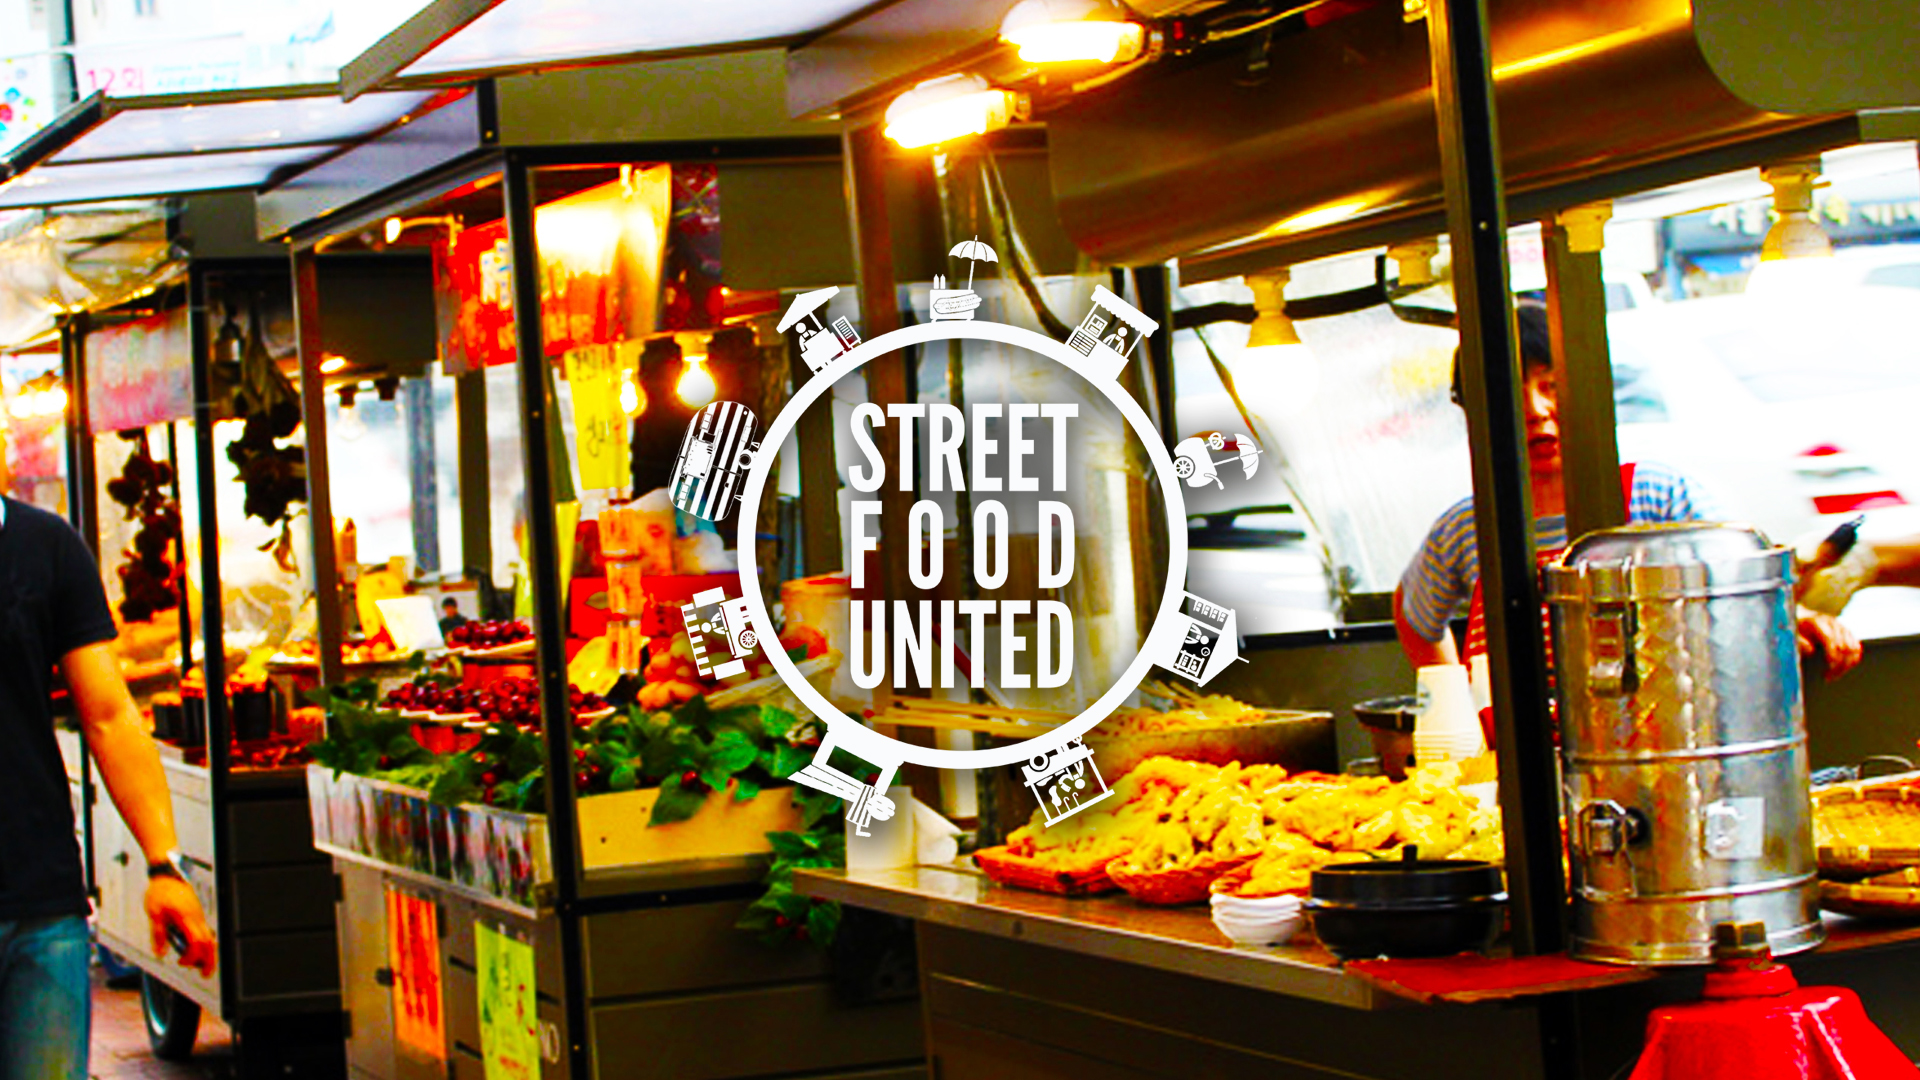 The Street Food United Arena features array of gourmet street food stalls and food carts offering authentic foods from various regions around the world.